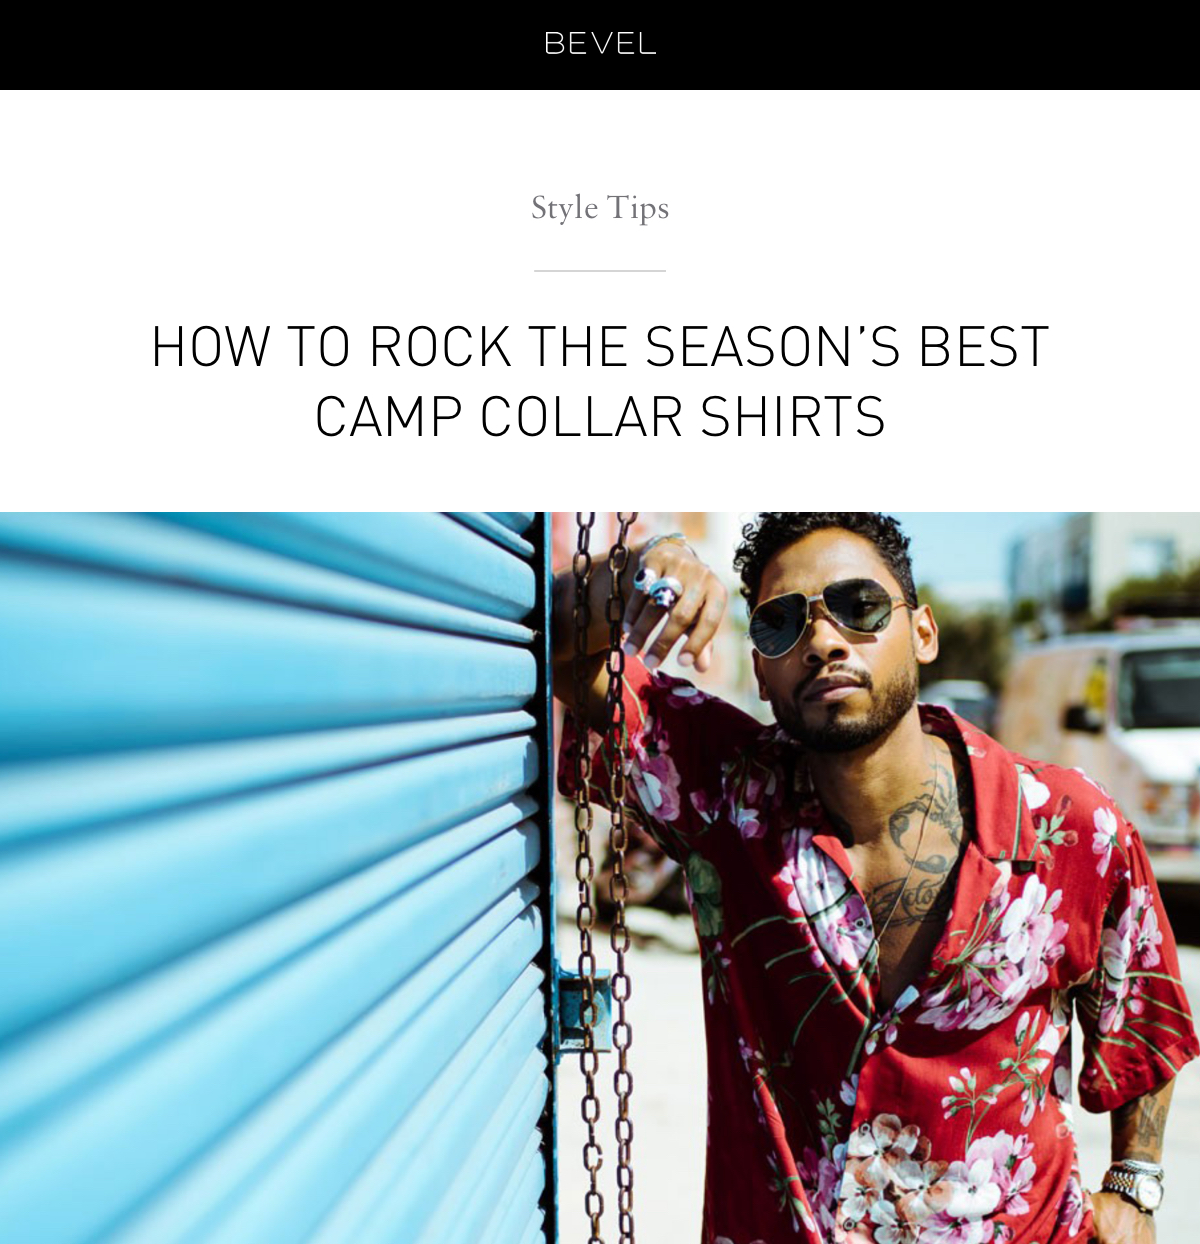 Style Tips: How to rock the season's best camp collar shirts